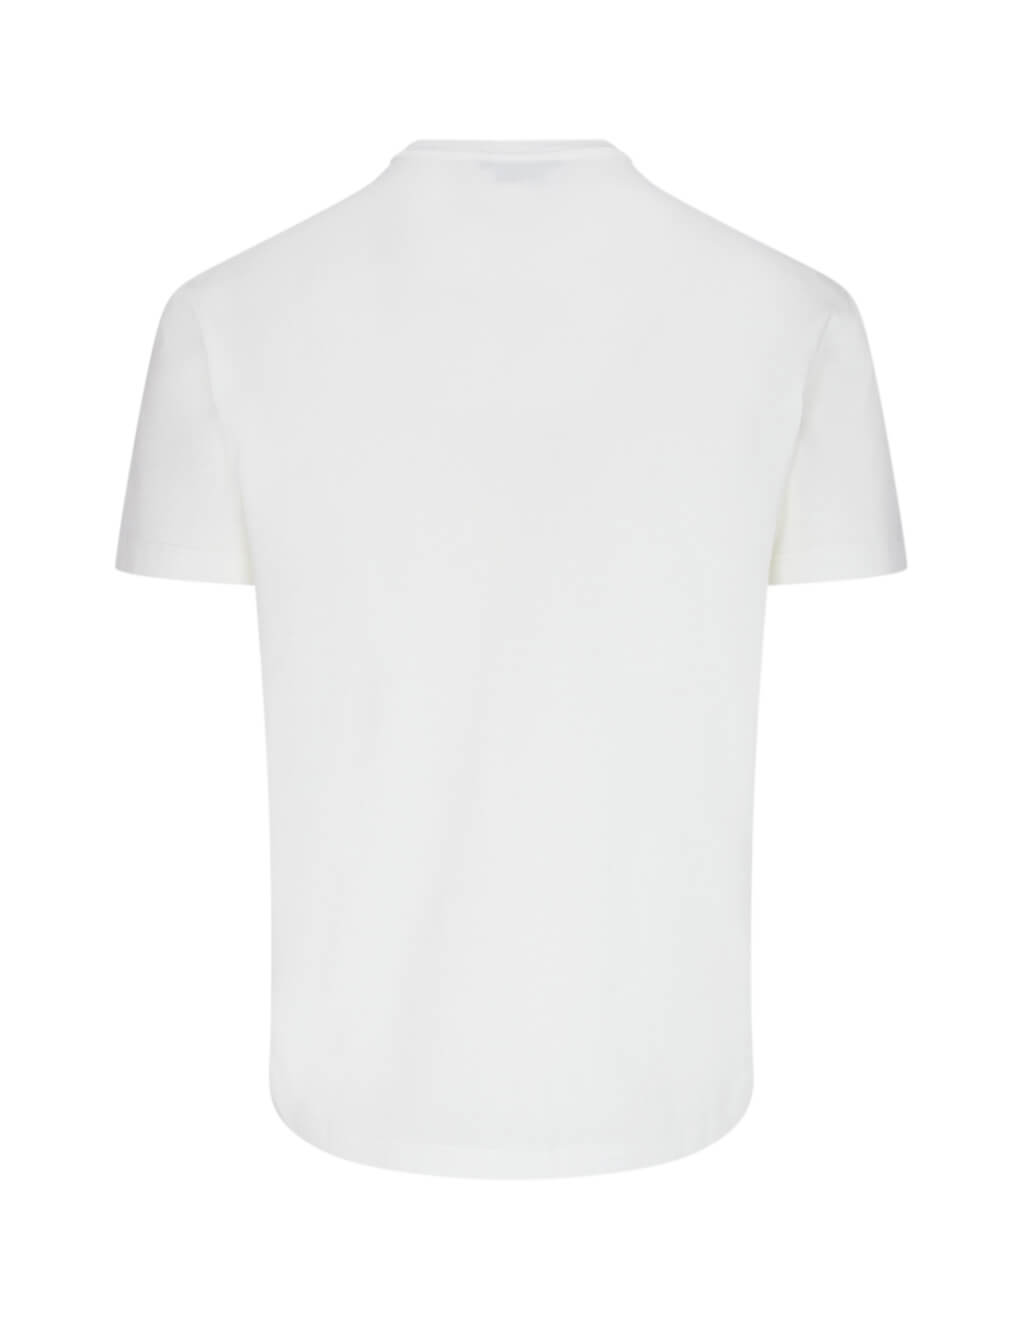 Versace Men's Giulio Fashion White Home Signature T-Shirt A85989-A228806_A1002